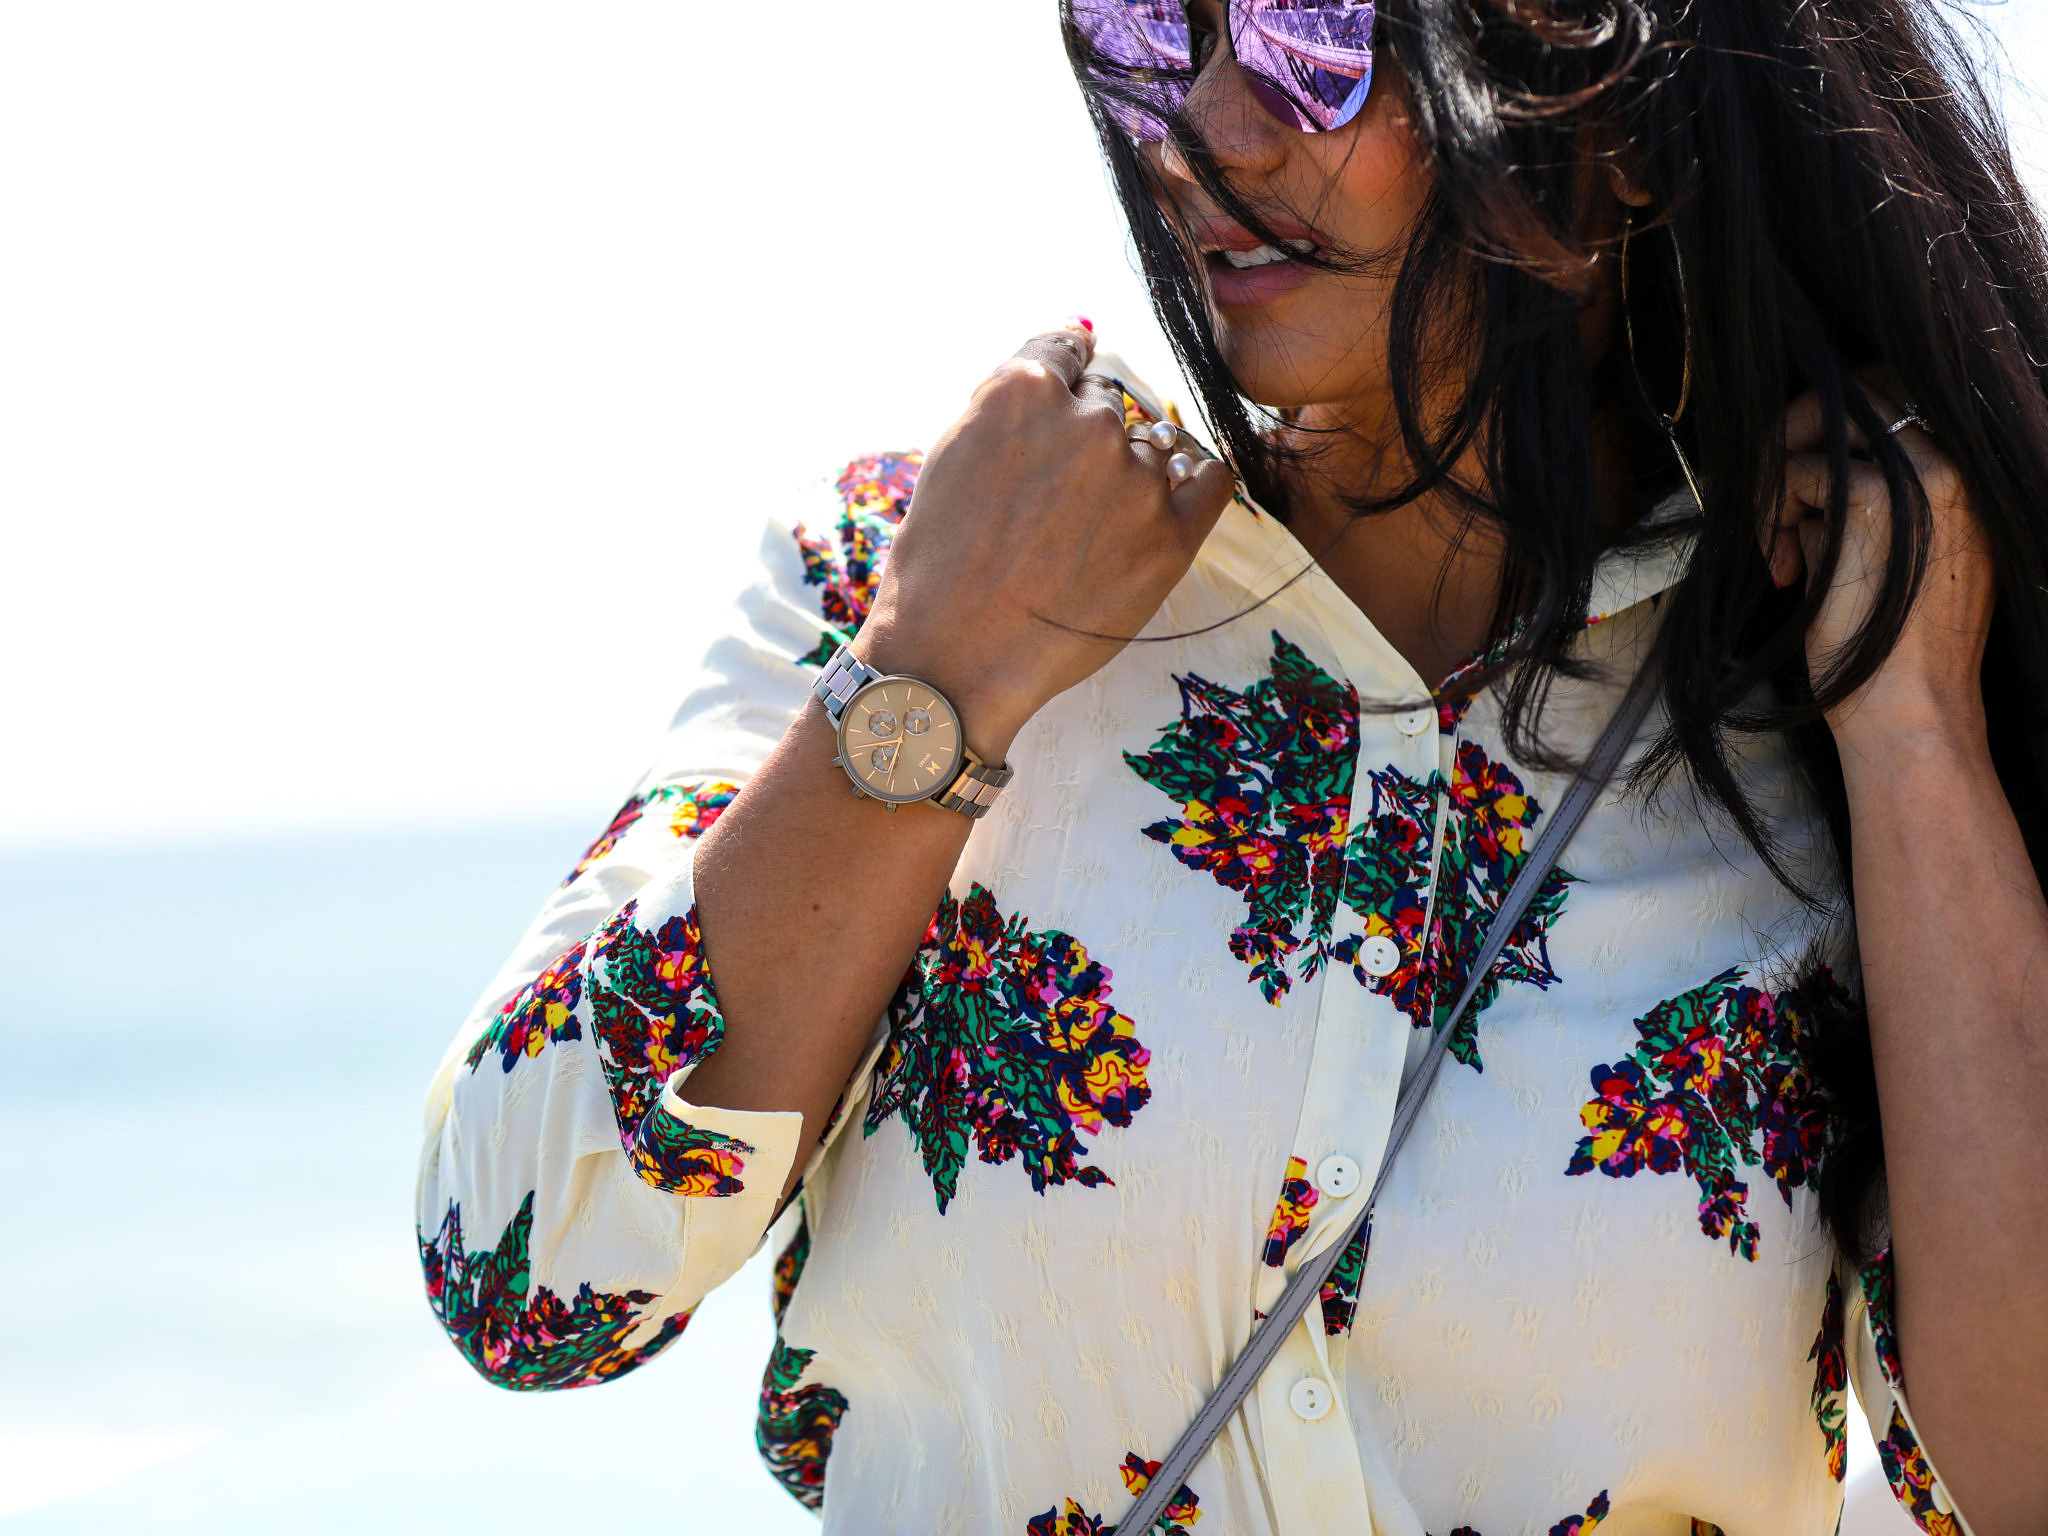 Stylish Watches and Sunglasses from MVMT